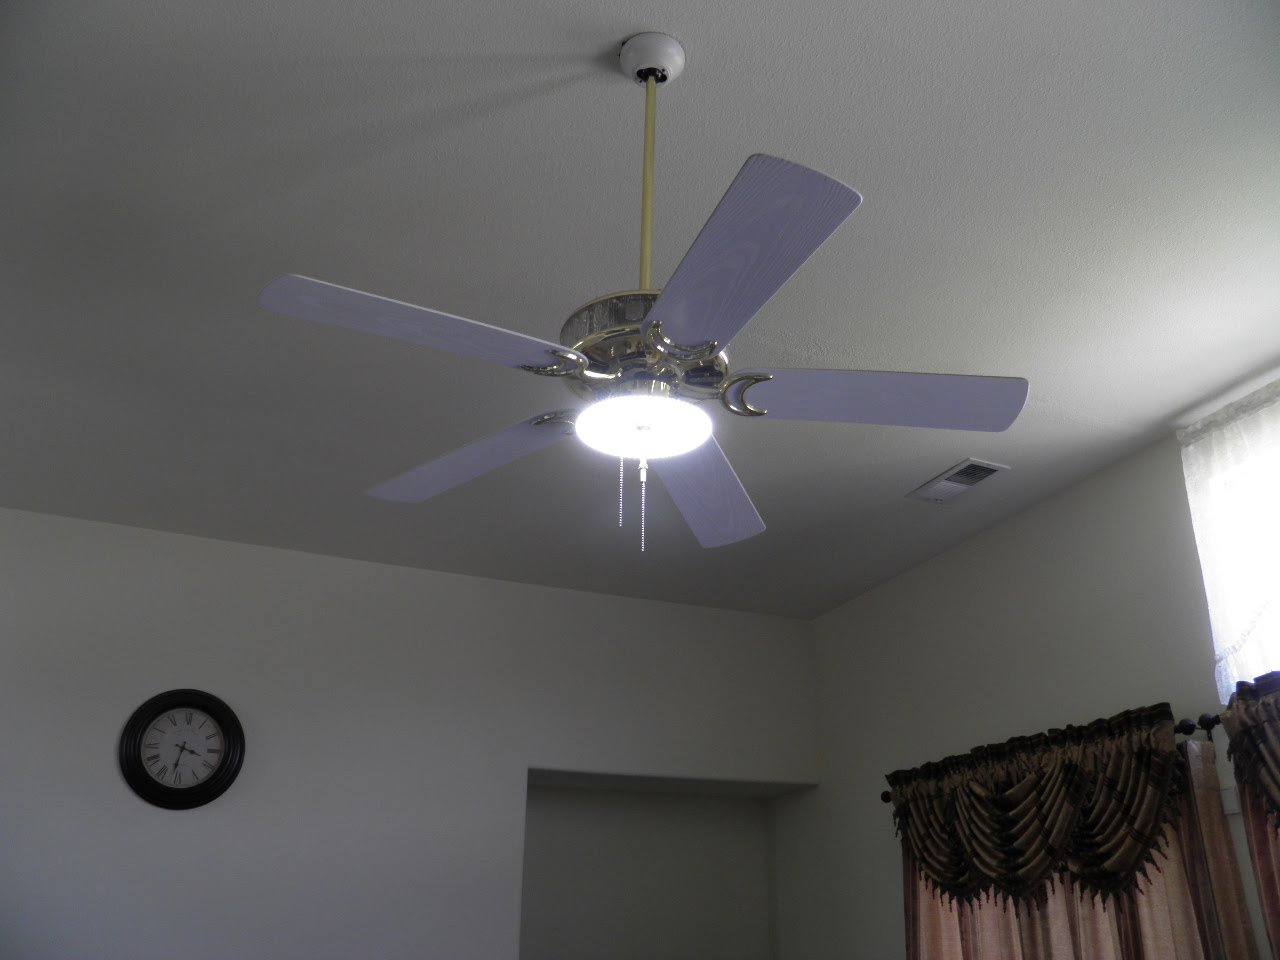 Energy efficient ceiling fans with lights ceiling light ideas led ceiling fan lights energy efficient brightening massive aloadofball Image collections